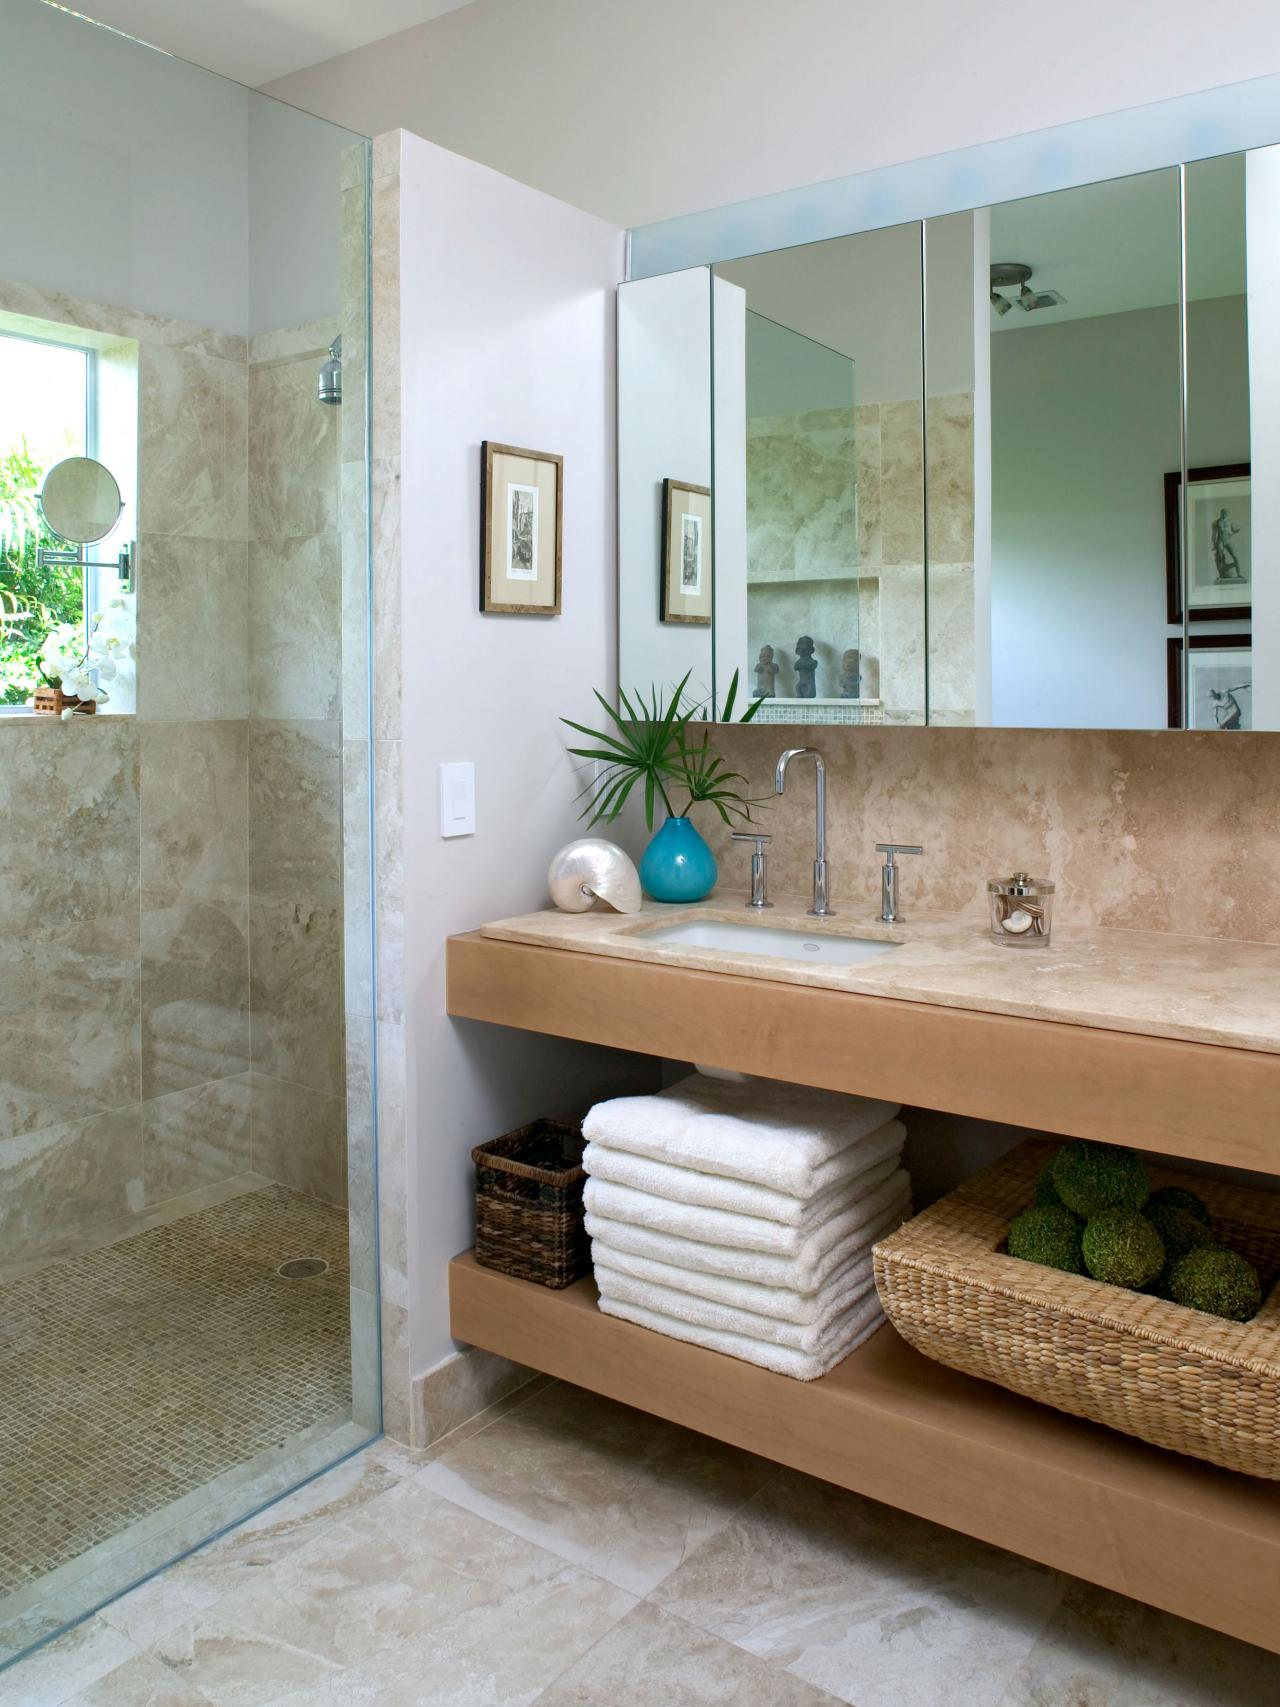 Coastal bathroom ideas bathroom ideas designs hgtv for Beach decor bathroom ideas